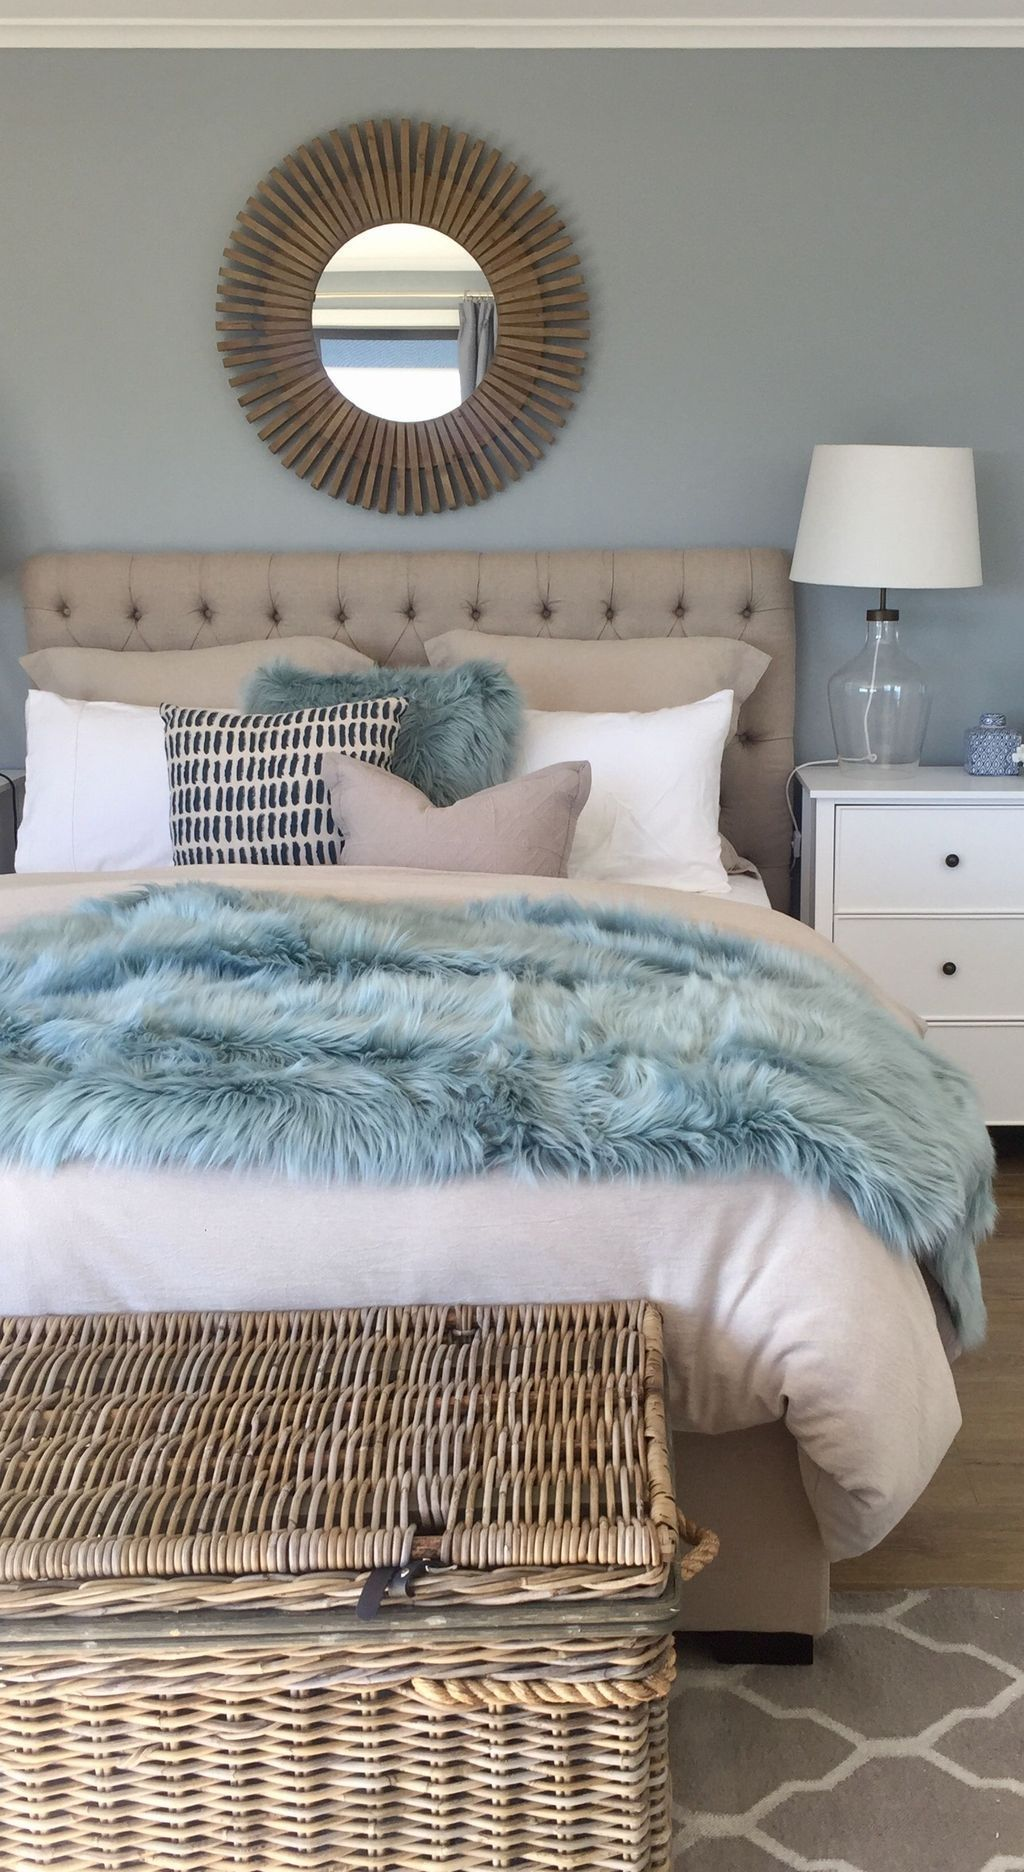 35 Most Popular Beach Style Bedroom Design Ideas images